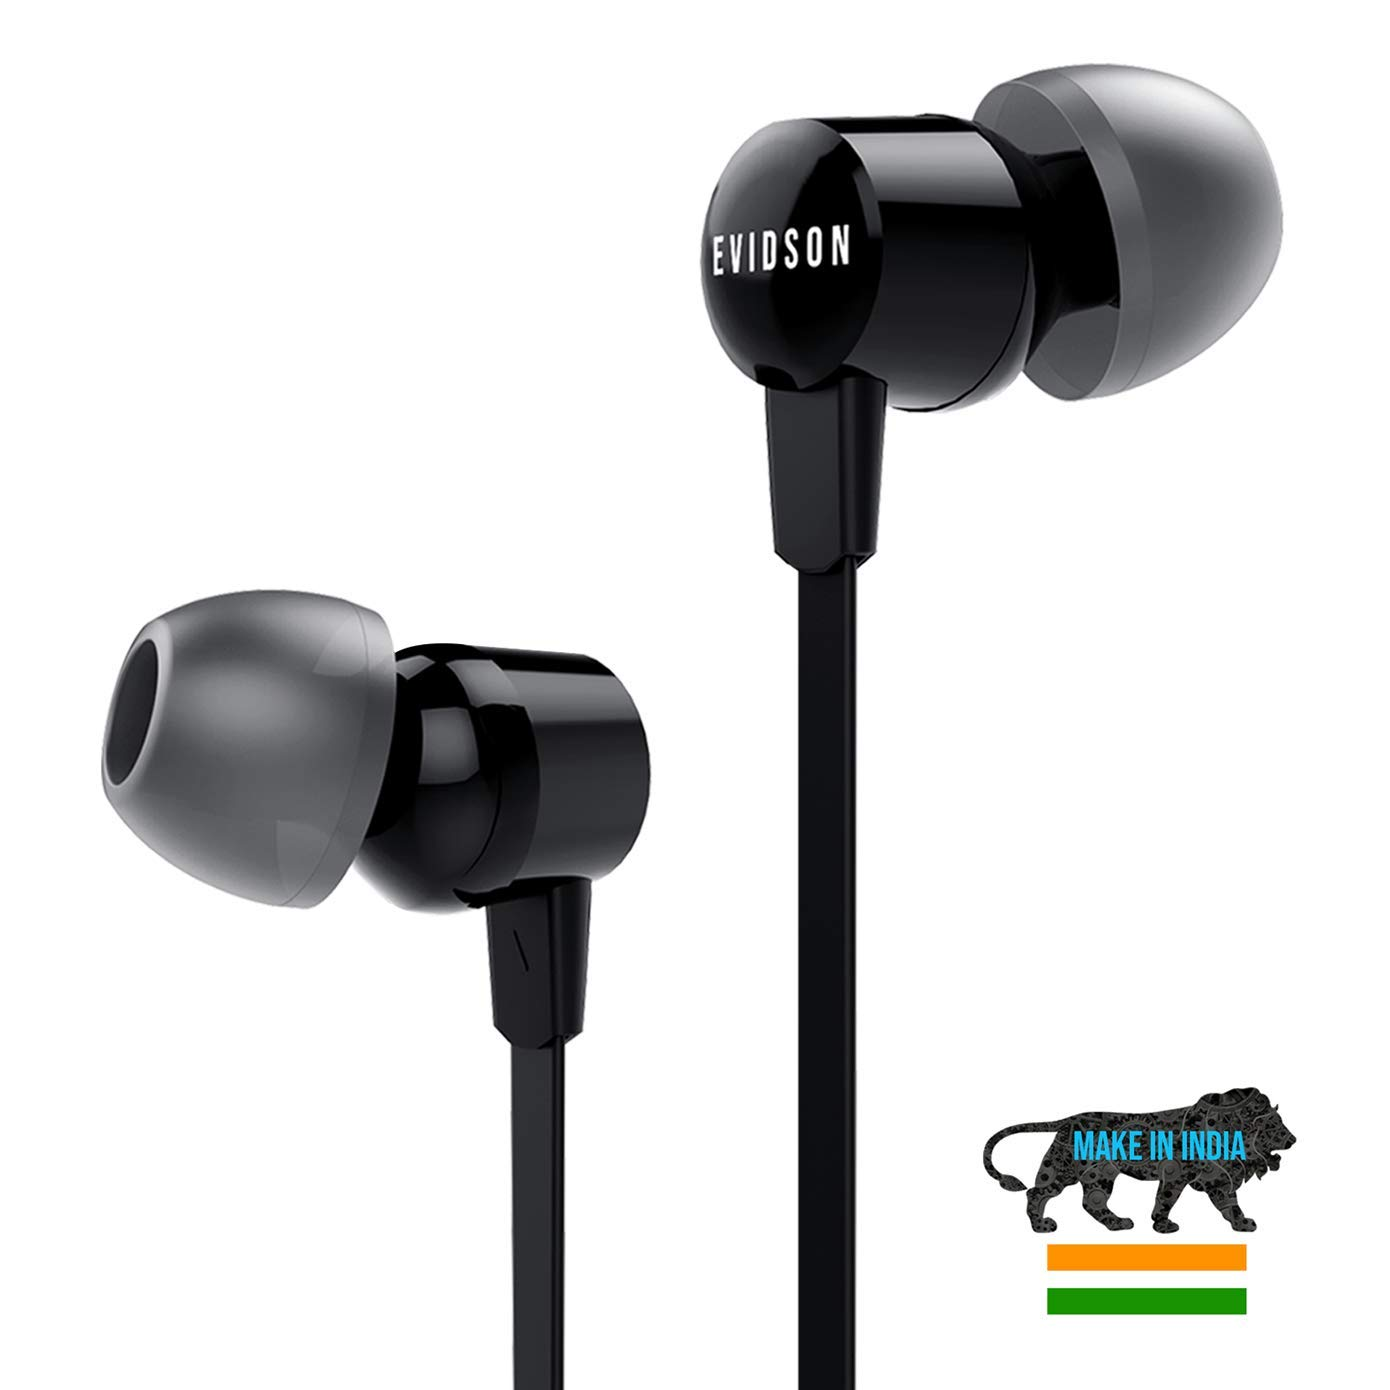 Evidson Vibe Black In-Ear Wired Earphones With Mic, 2X Bass,